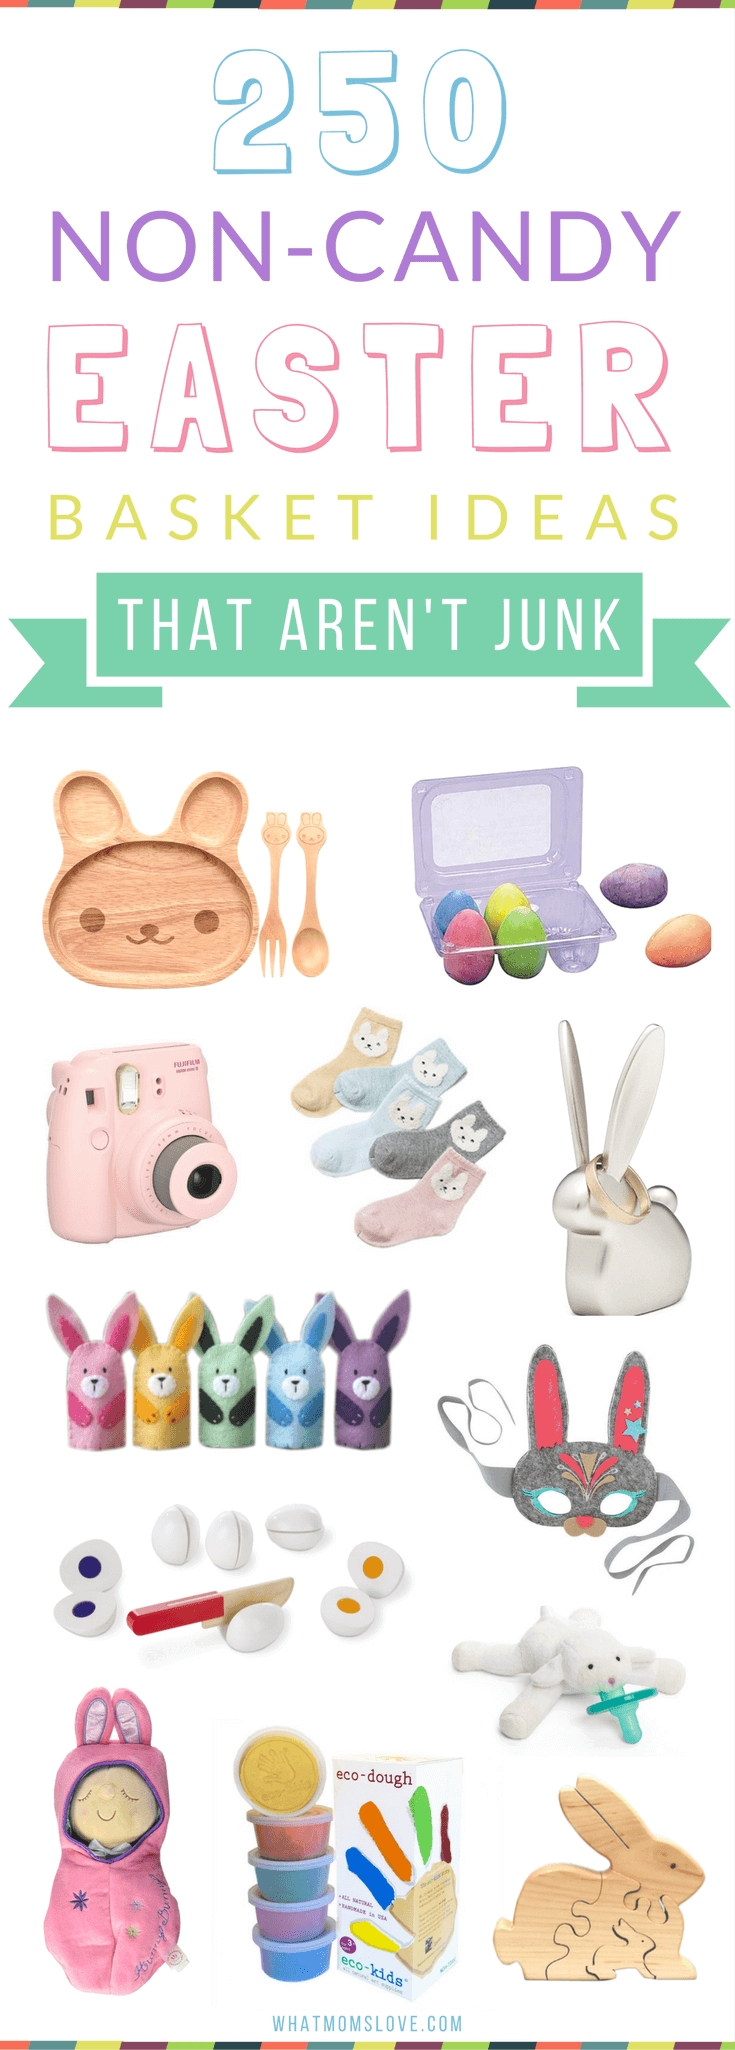 10 Cute Non Candy Easter Basket Ideas 250 non candy easter basket ideas for kids from babies to teens 2020